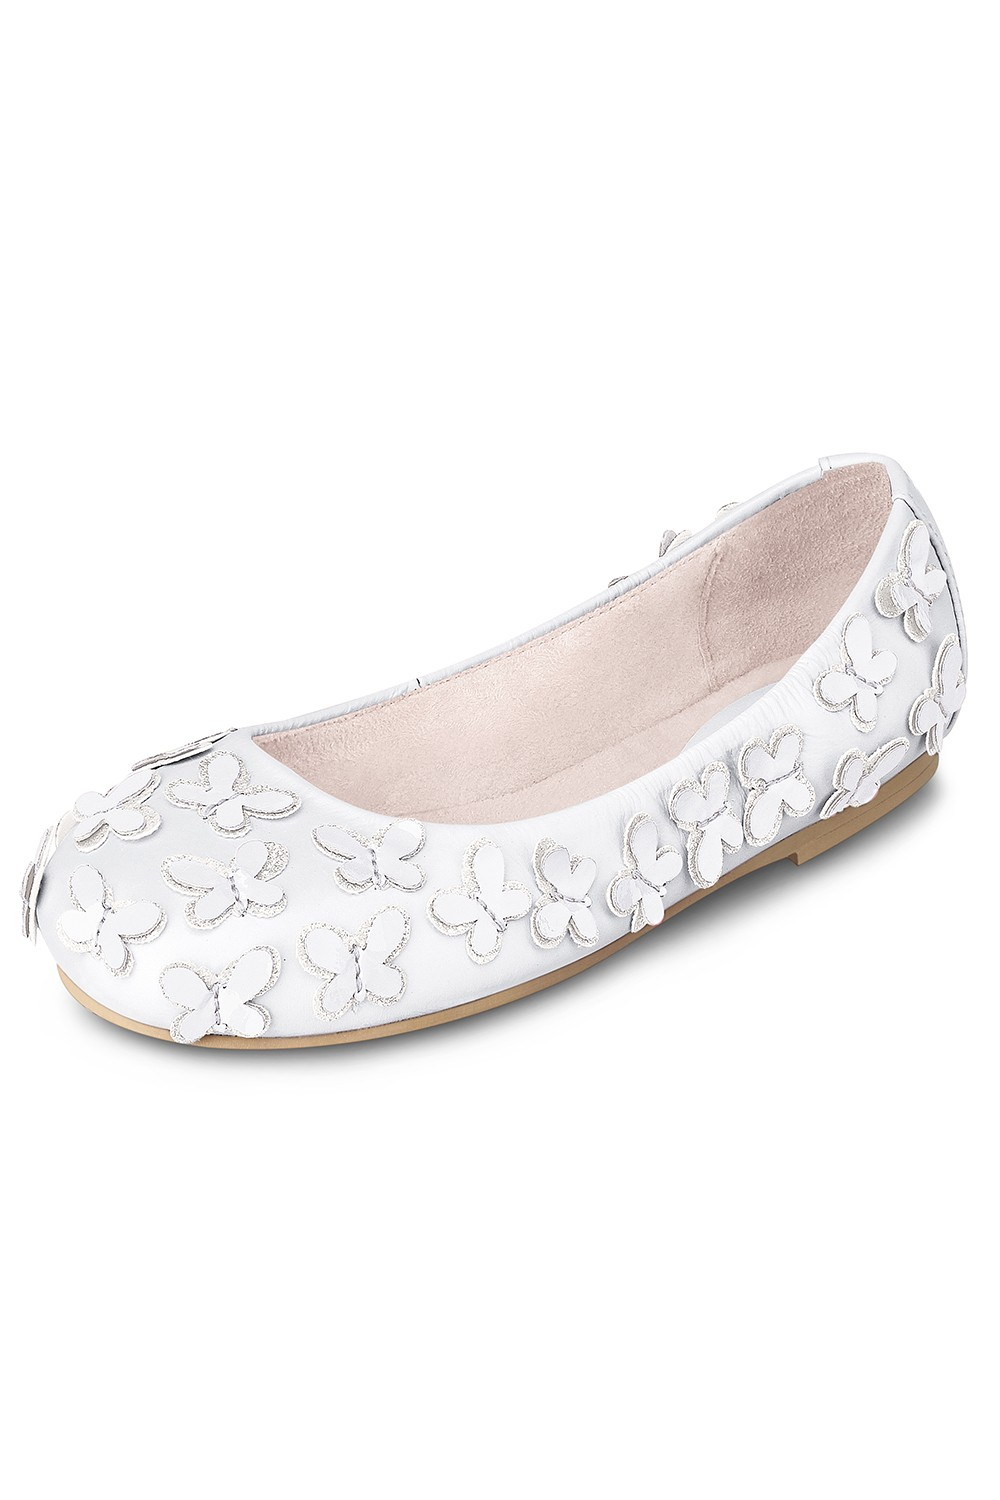 Papillon - Girls Girls Fashion Shoes